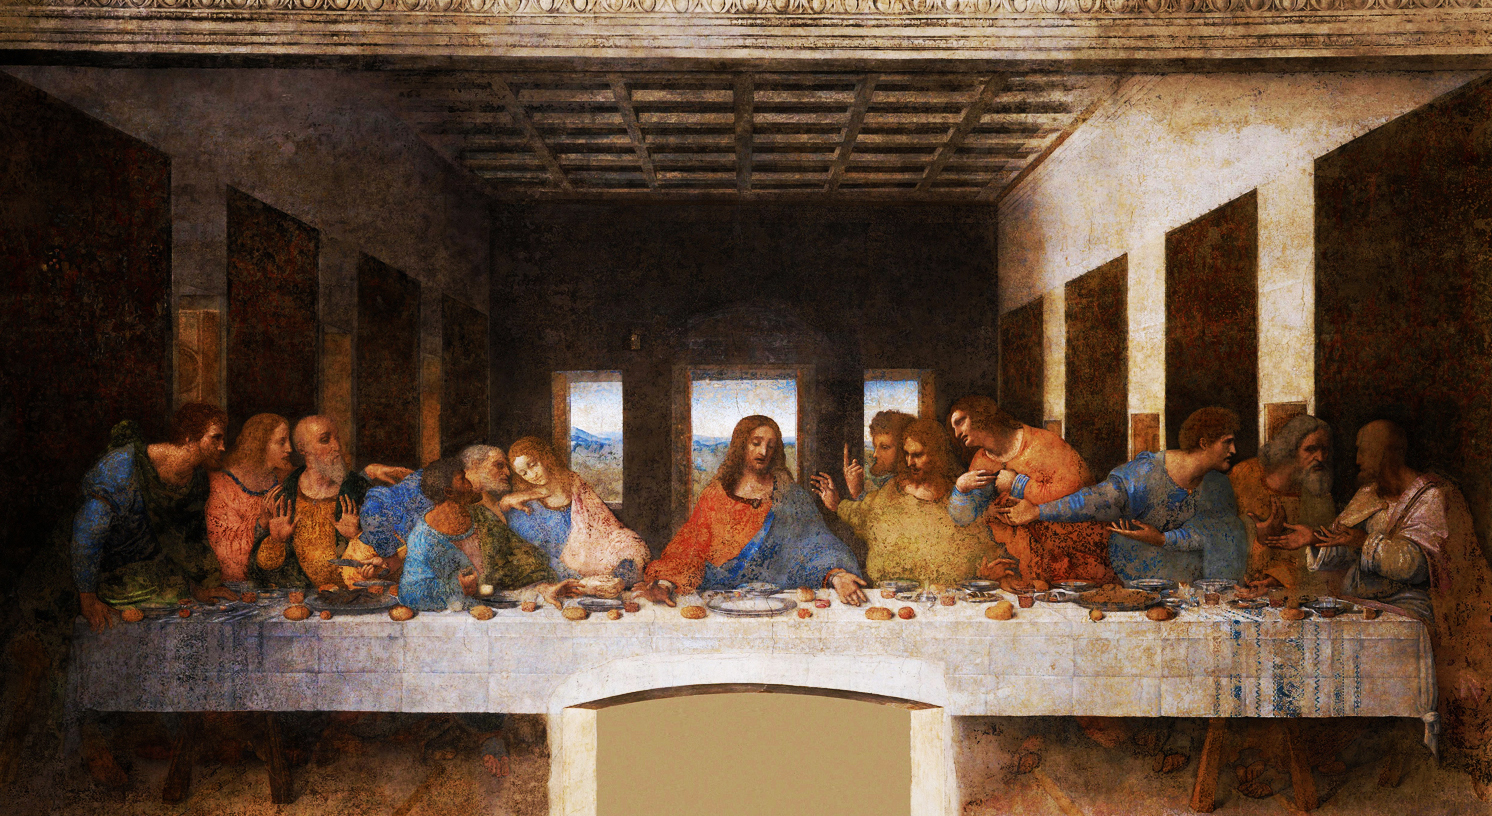 975427_974165_Da-Vinci-Last-Supper_1